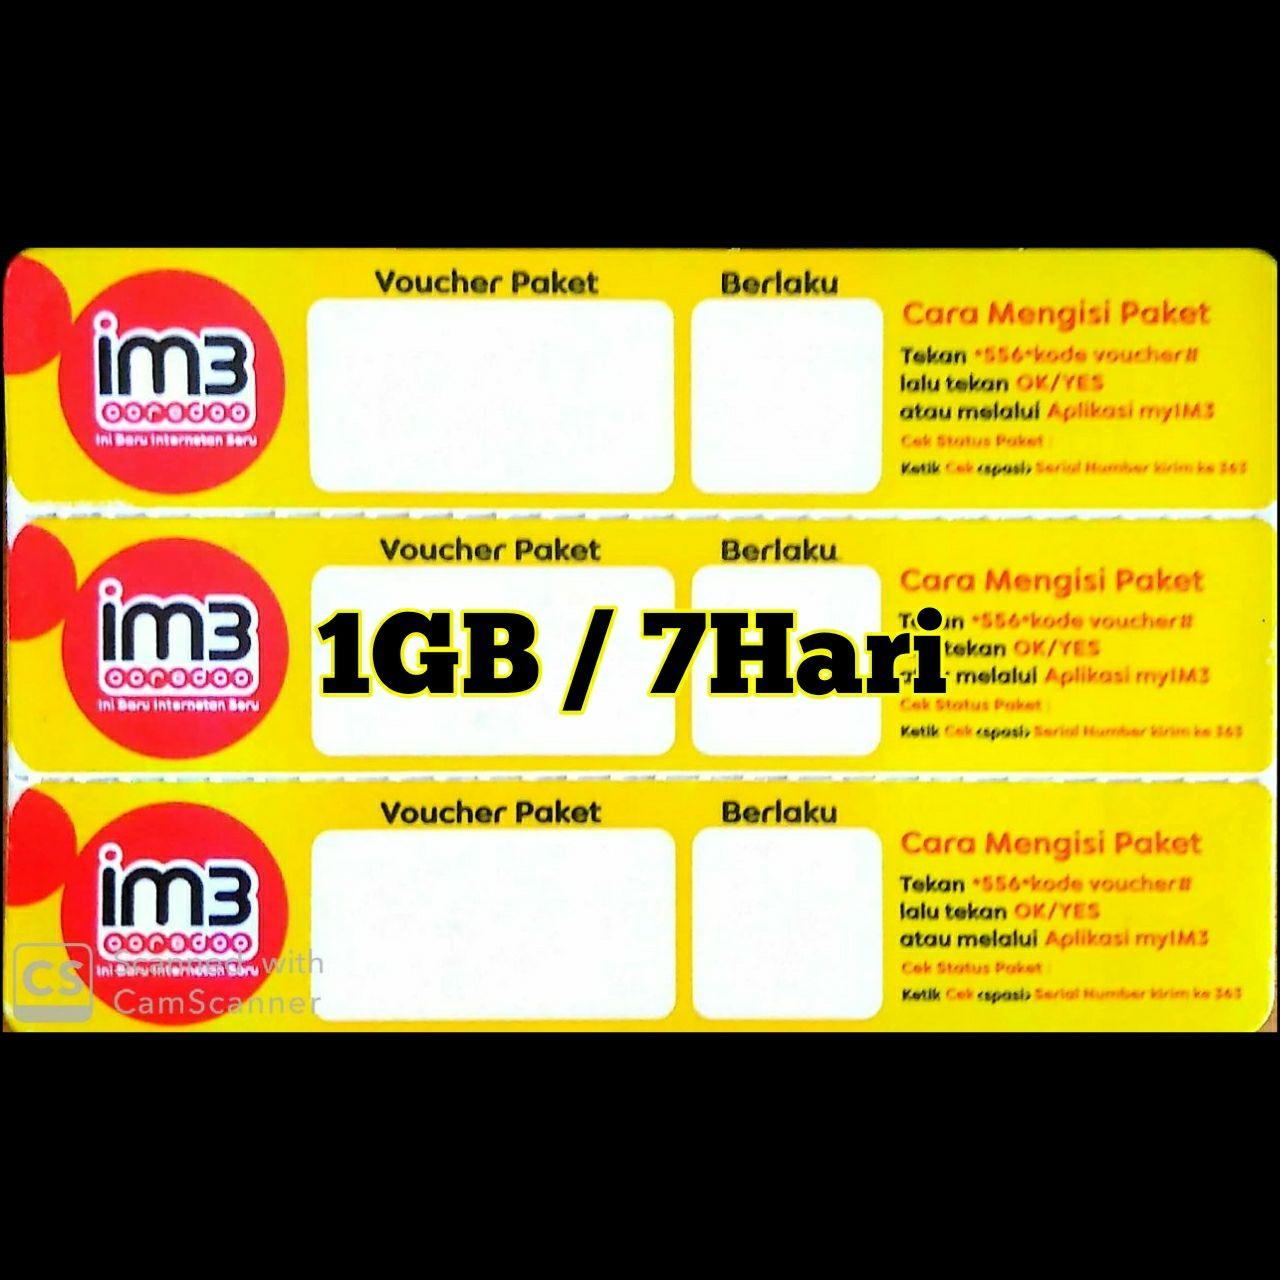 Data Im3 1GB/7HARI